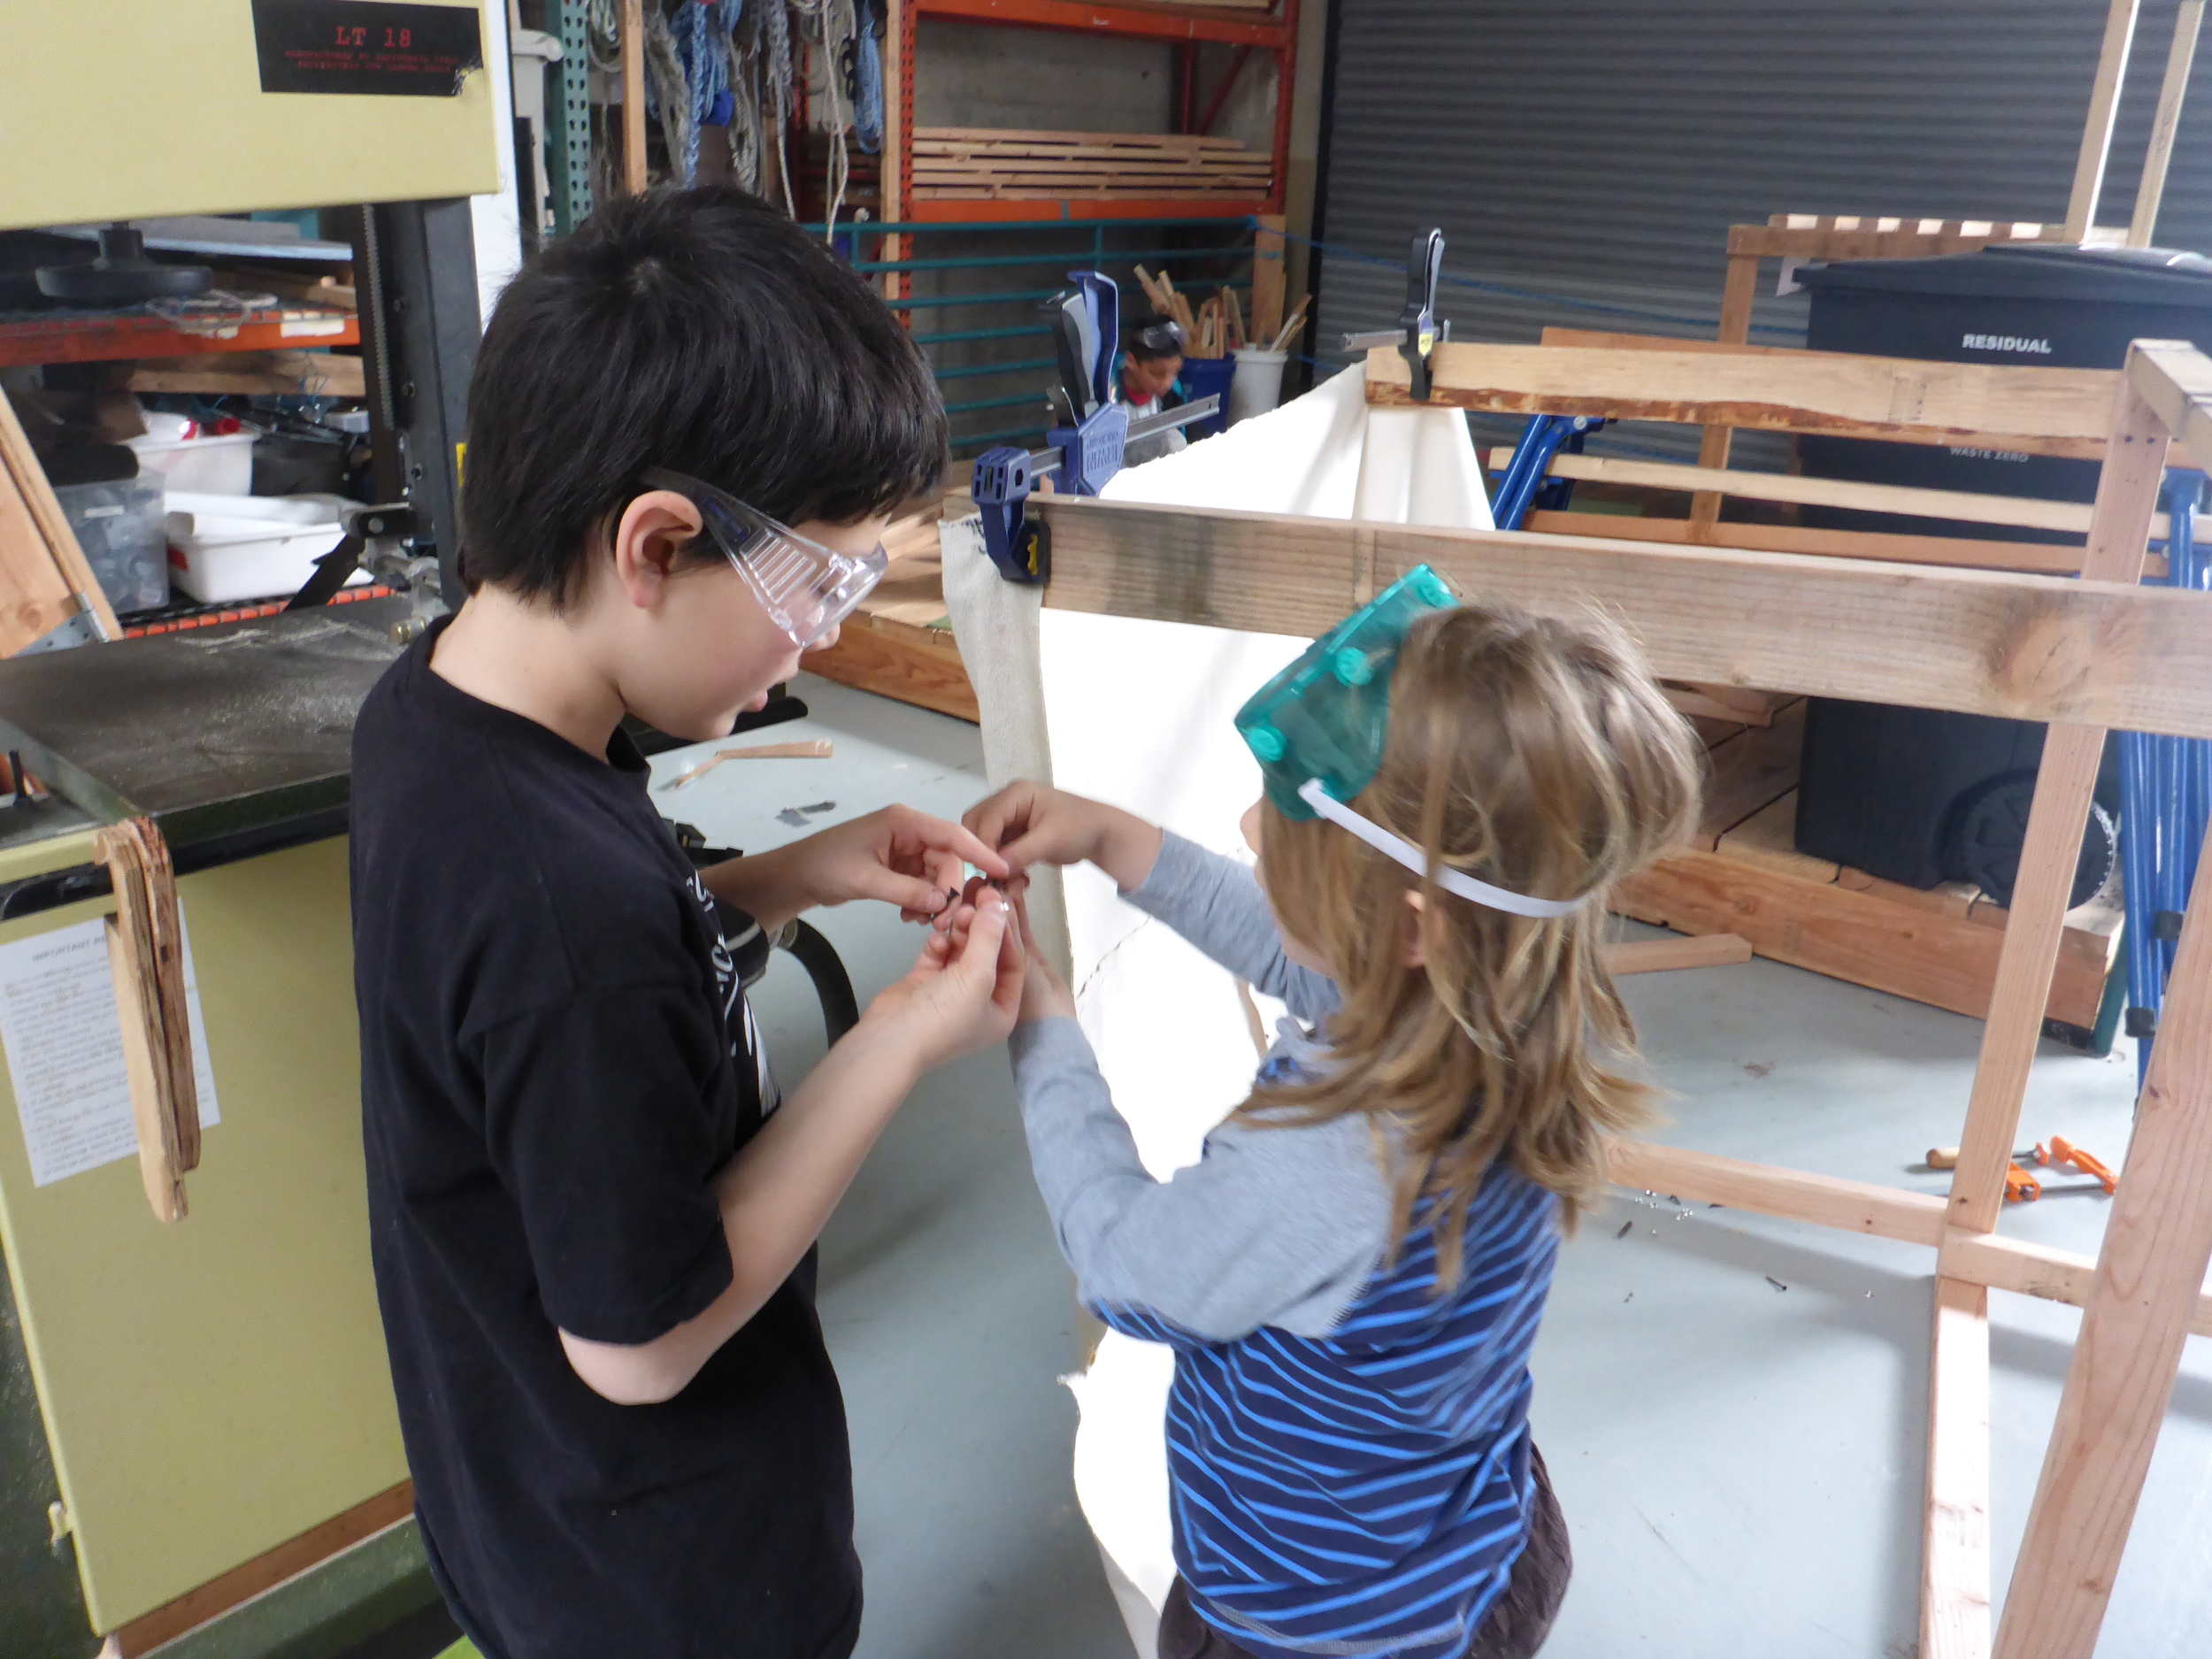 Ayden shows Eli how to put the finish washer and screws together to attach the awning.